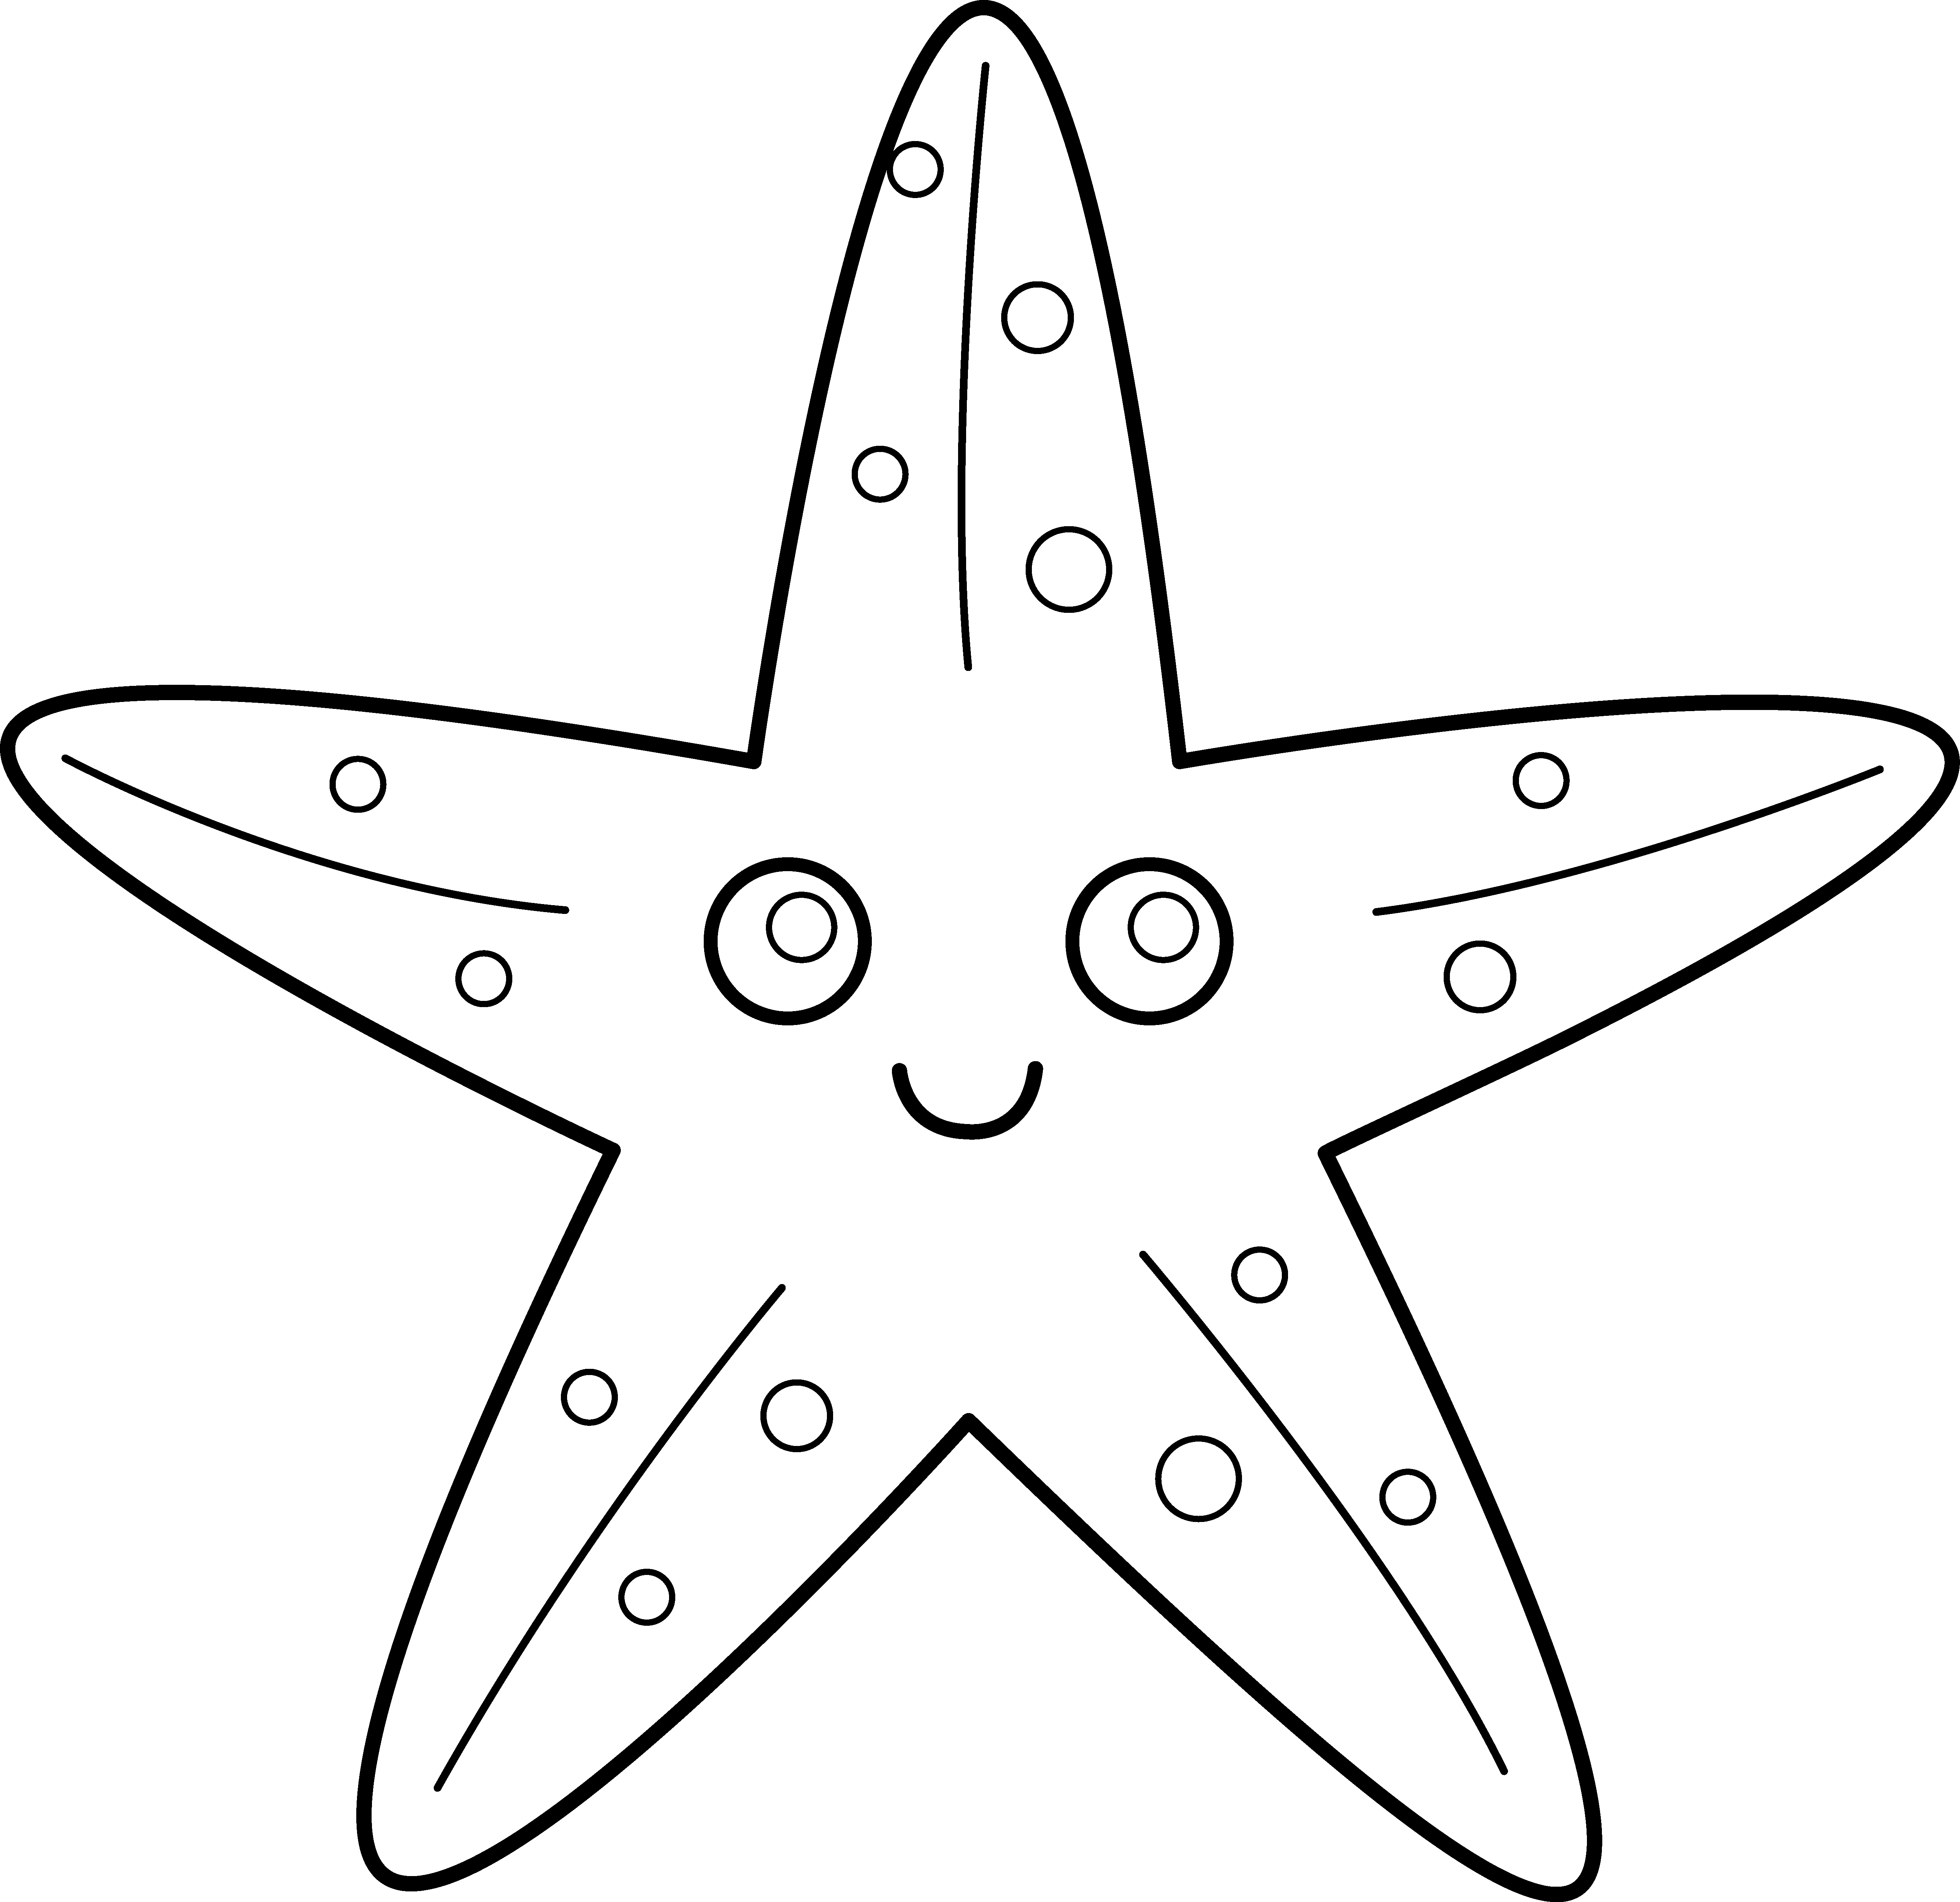 clip art library library Rainbow fish clipart black and white. Starfish for applique daycare